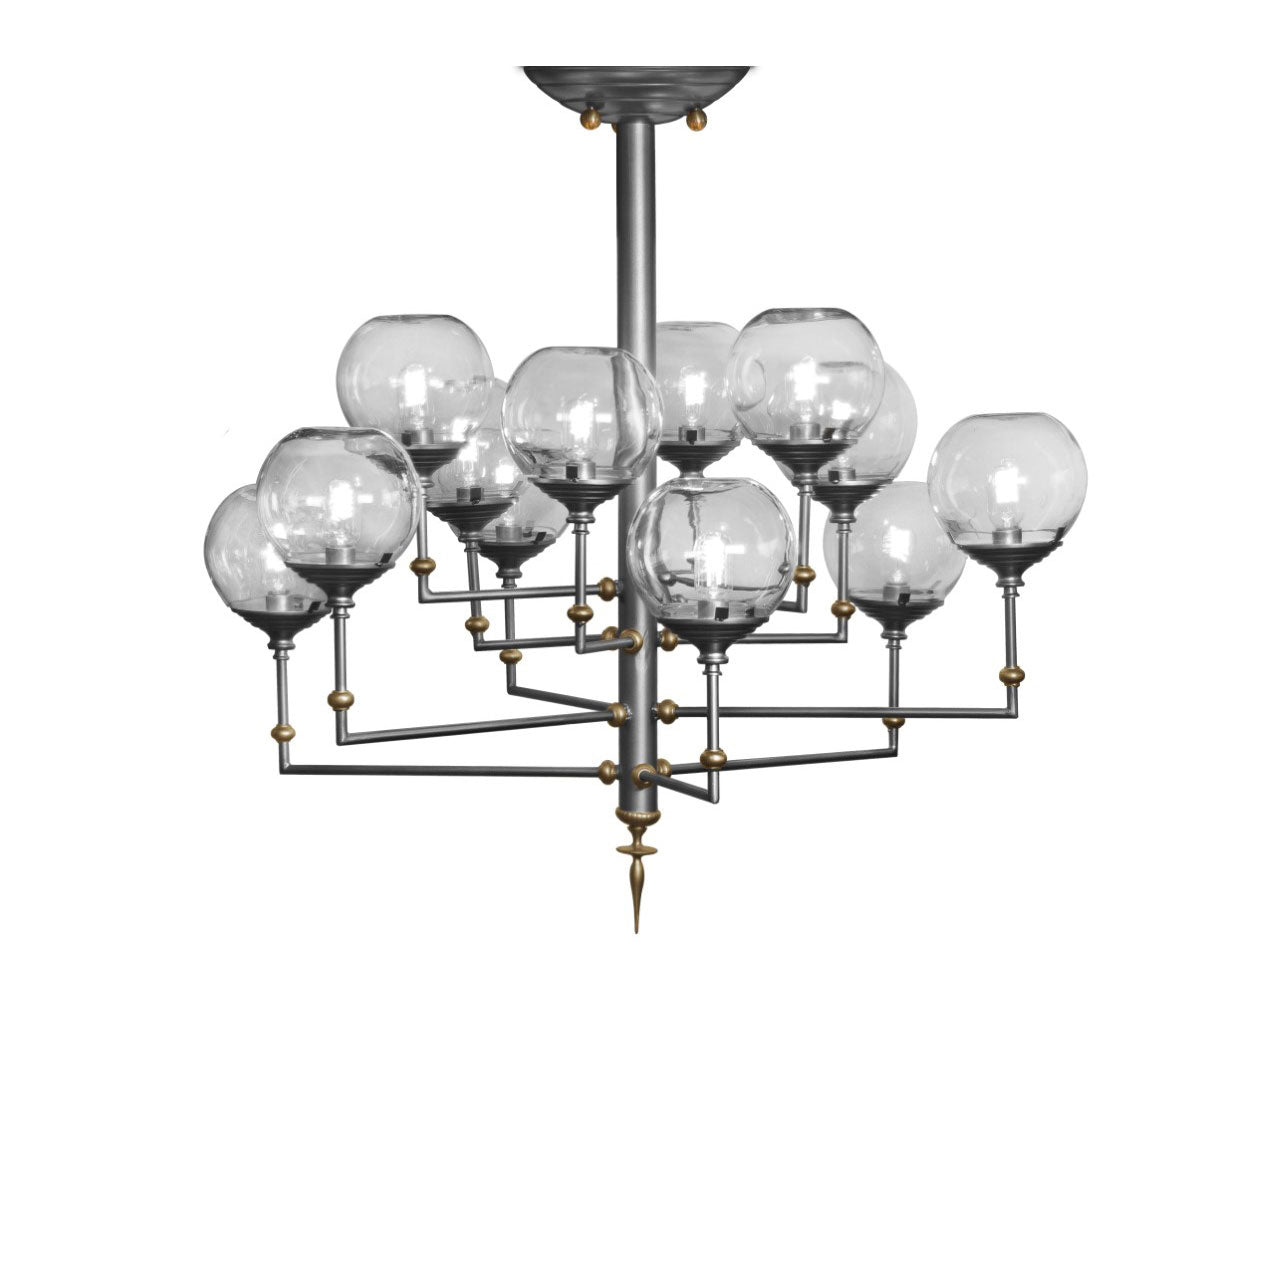 "Orbit Chandelier, Iron, Brass, Twelve 8"" Clear Glass Shades by Luna Bella"